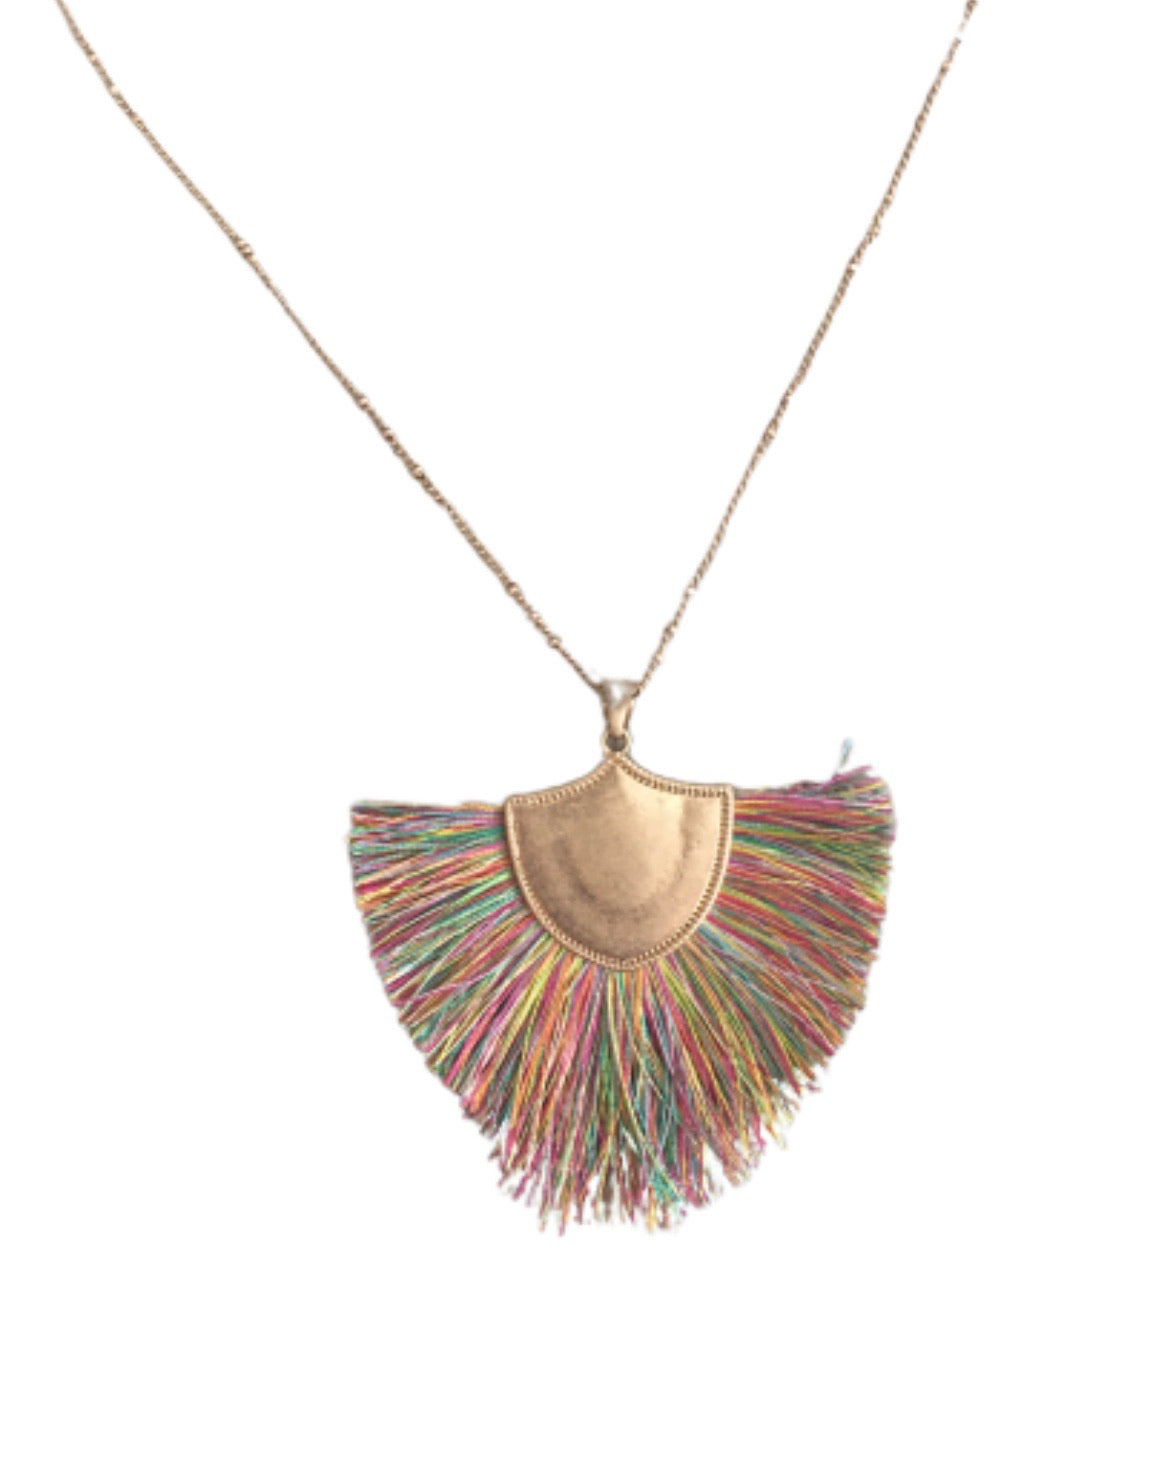 New ! Gia Fringe Statement Necklace - Glamco Boutique